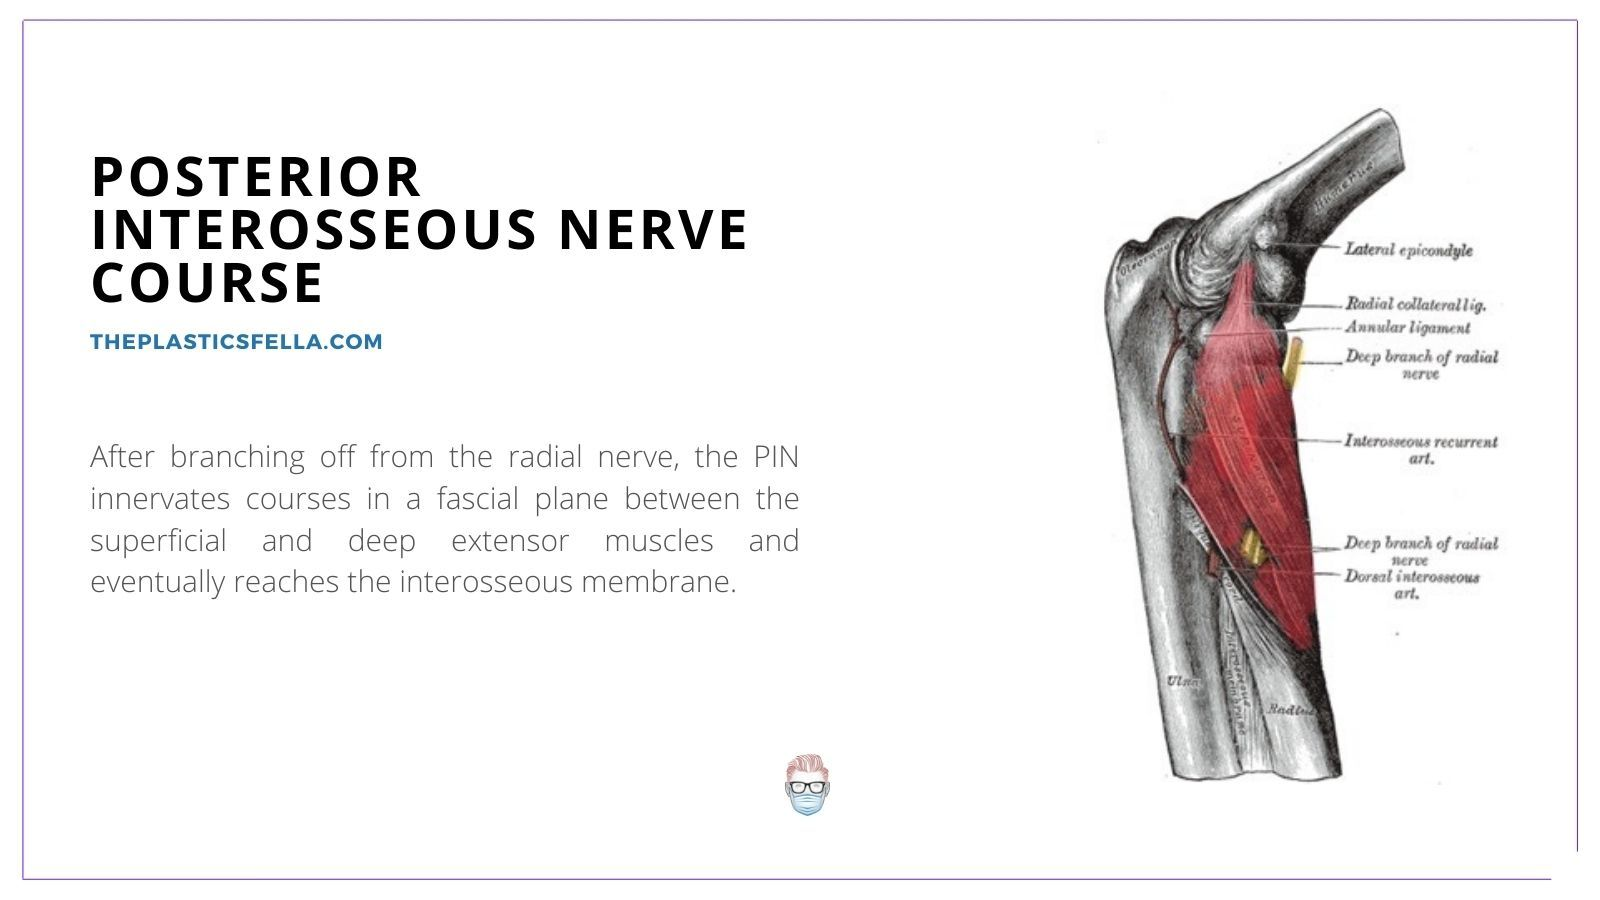 Posterior Interosseous Nerve (PIN) Branches, Posterior Interosseous Nerve (PIN) Course, Posterior Interosseous Nerve (PIN) Pathway, Posterior Interosseous Nerve (PIN) Compression